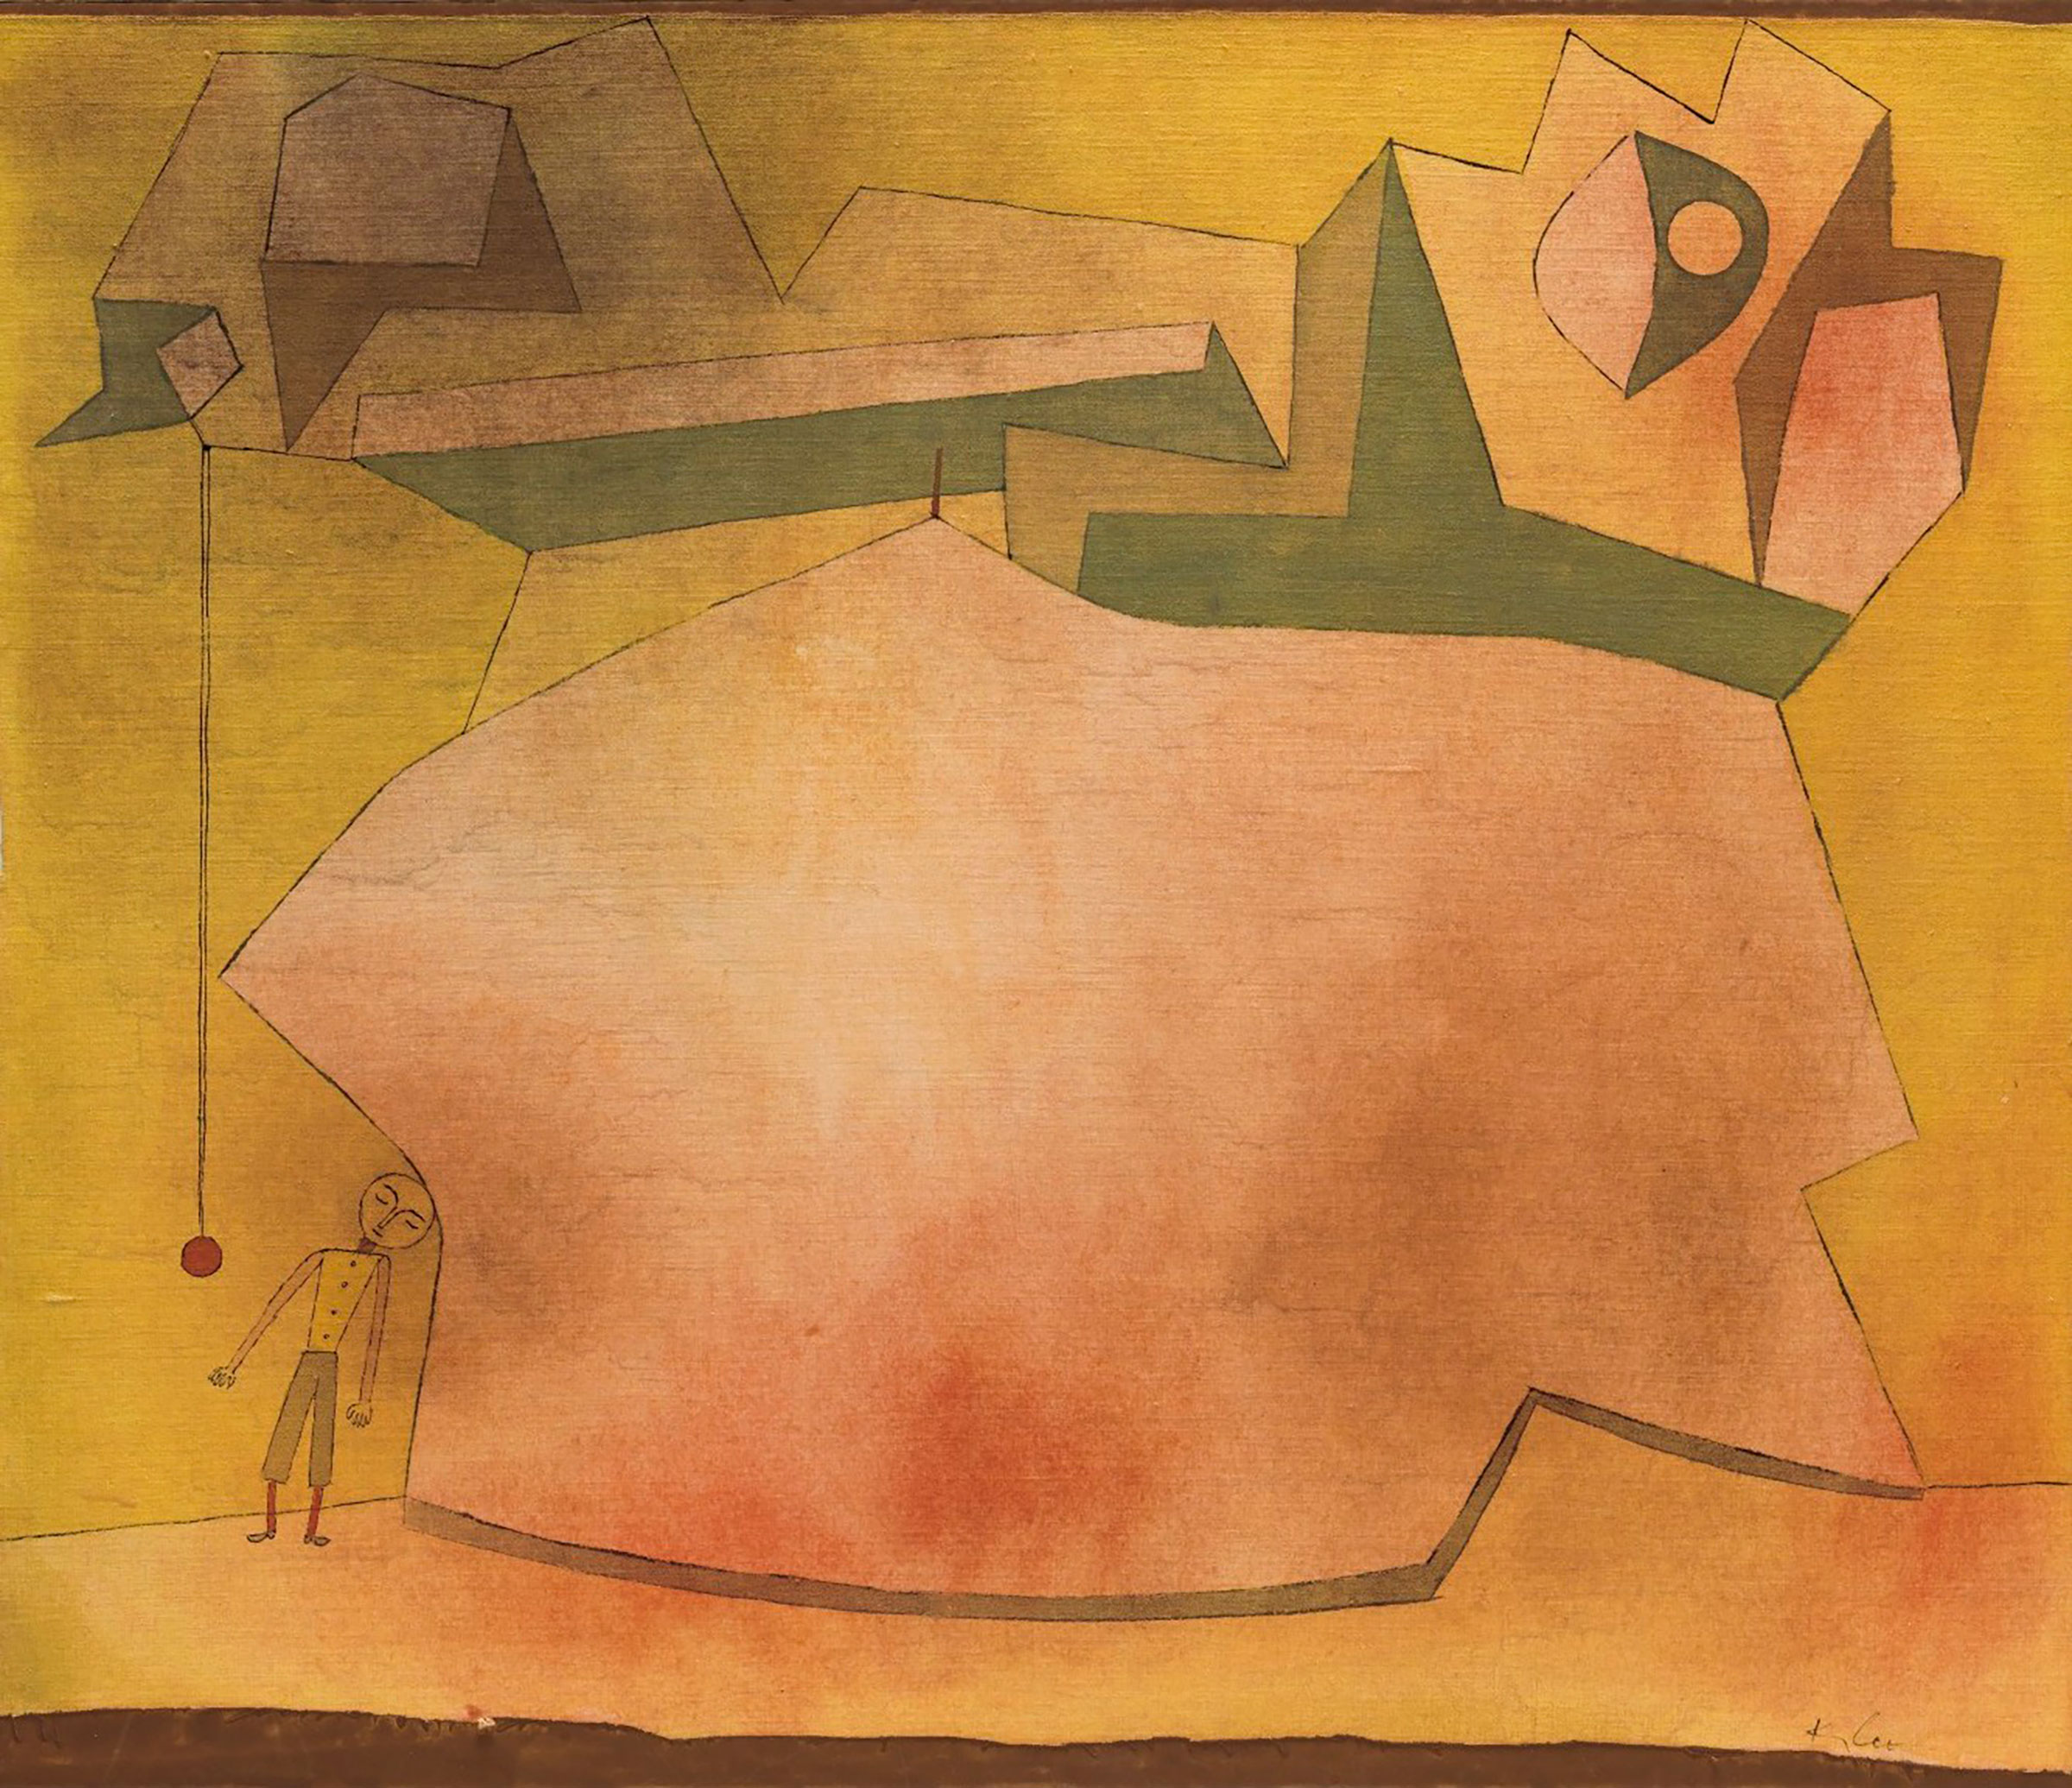 Paul Klee (1879-1940), Unerfülltes, 1930. Mount size 19⅝ x 25⅝  in (50 x 65.1  cm). Estimate $600,000-900,000. This lot is offered in the Impressionist and Modern Art Works on Paper Sale on 14 November 2017  at Christie's in New York